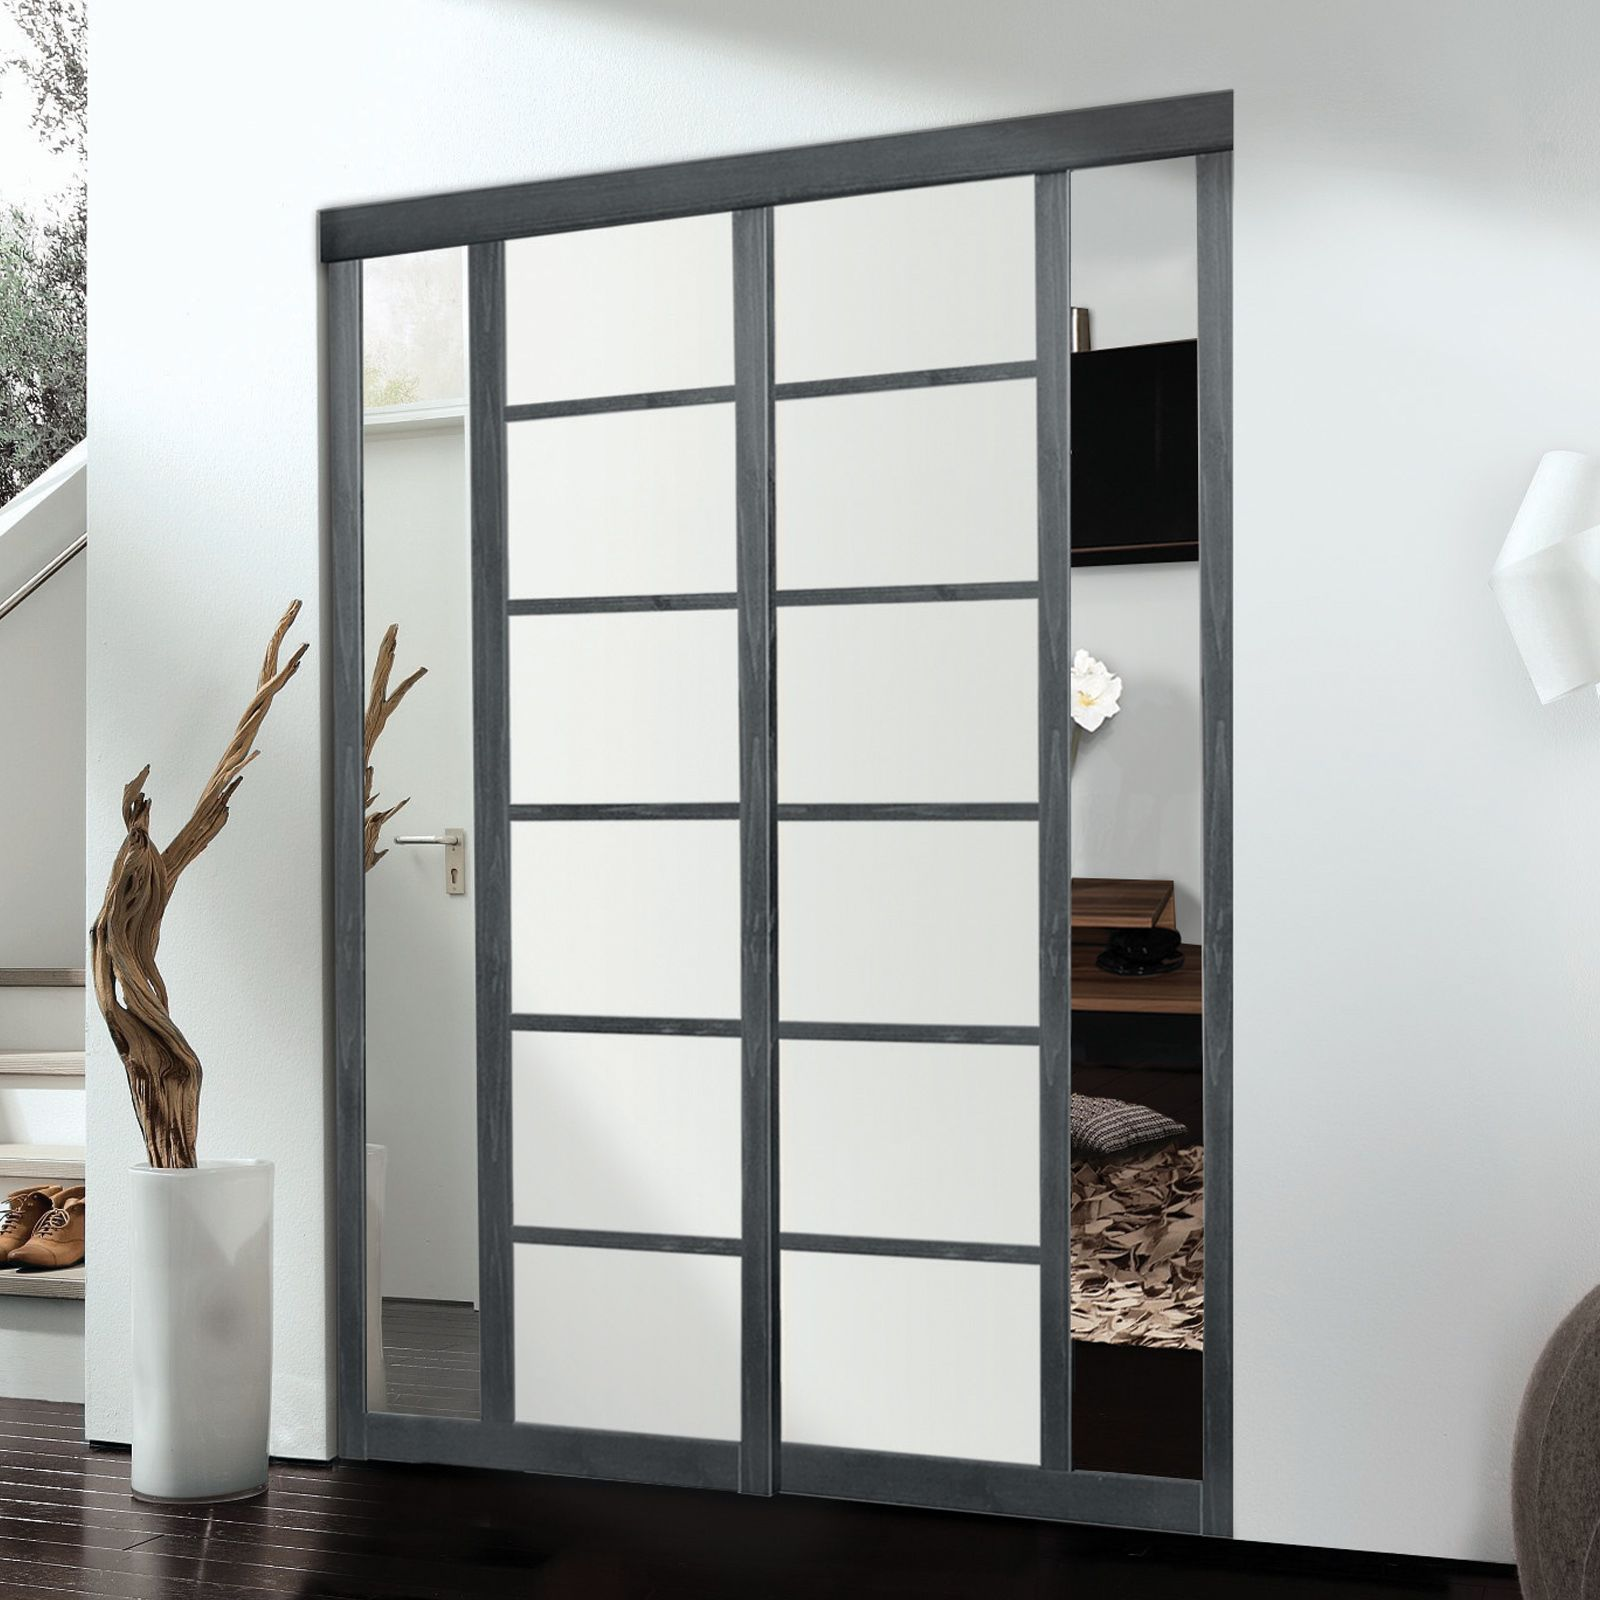 For Sliding Door Concept Sga